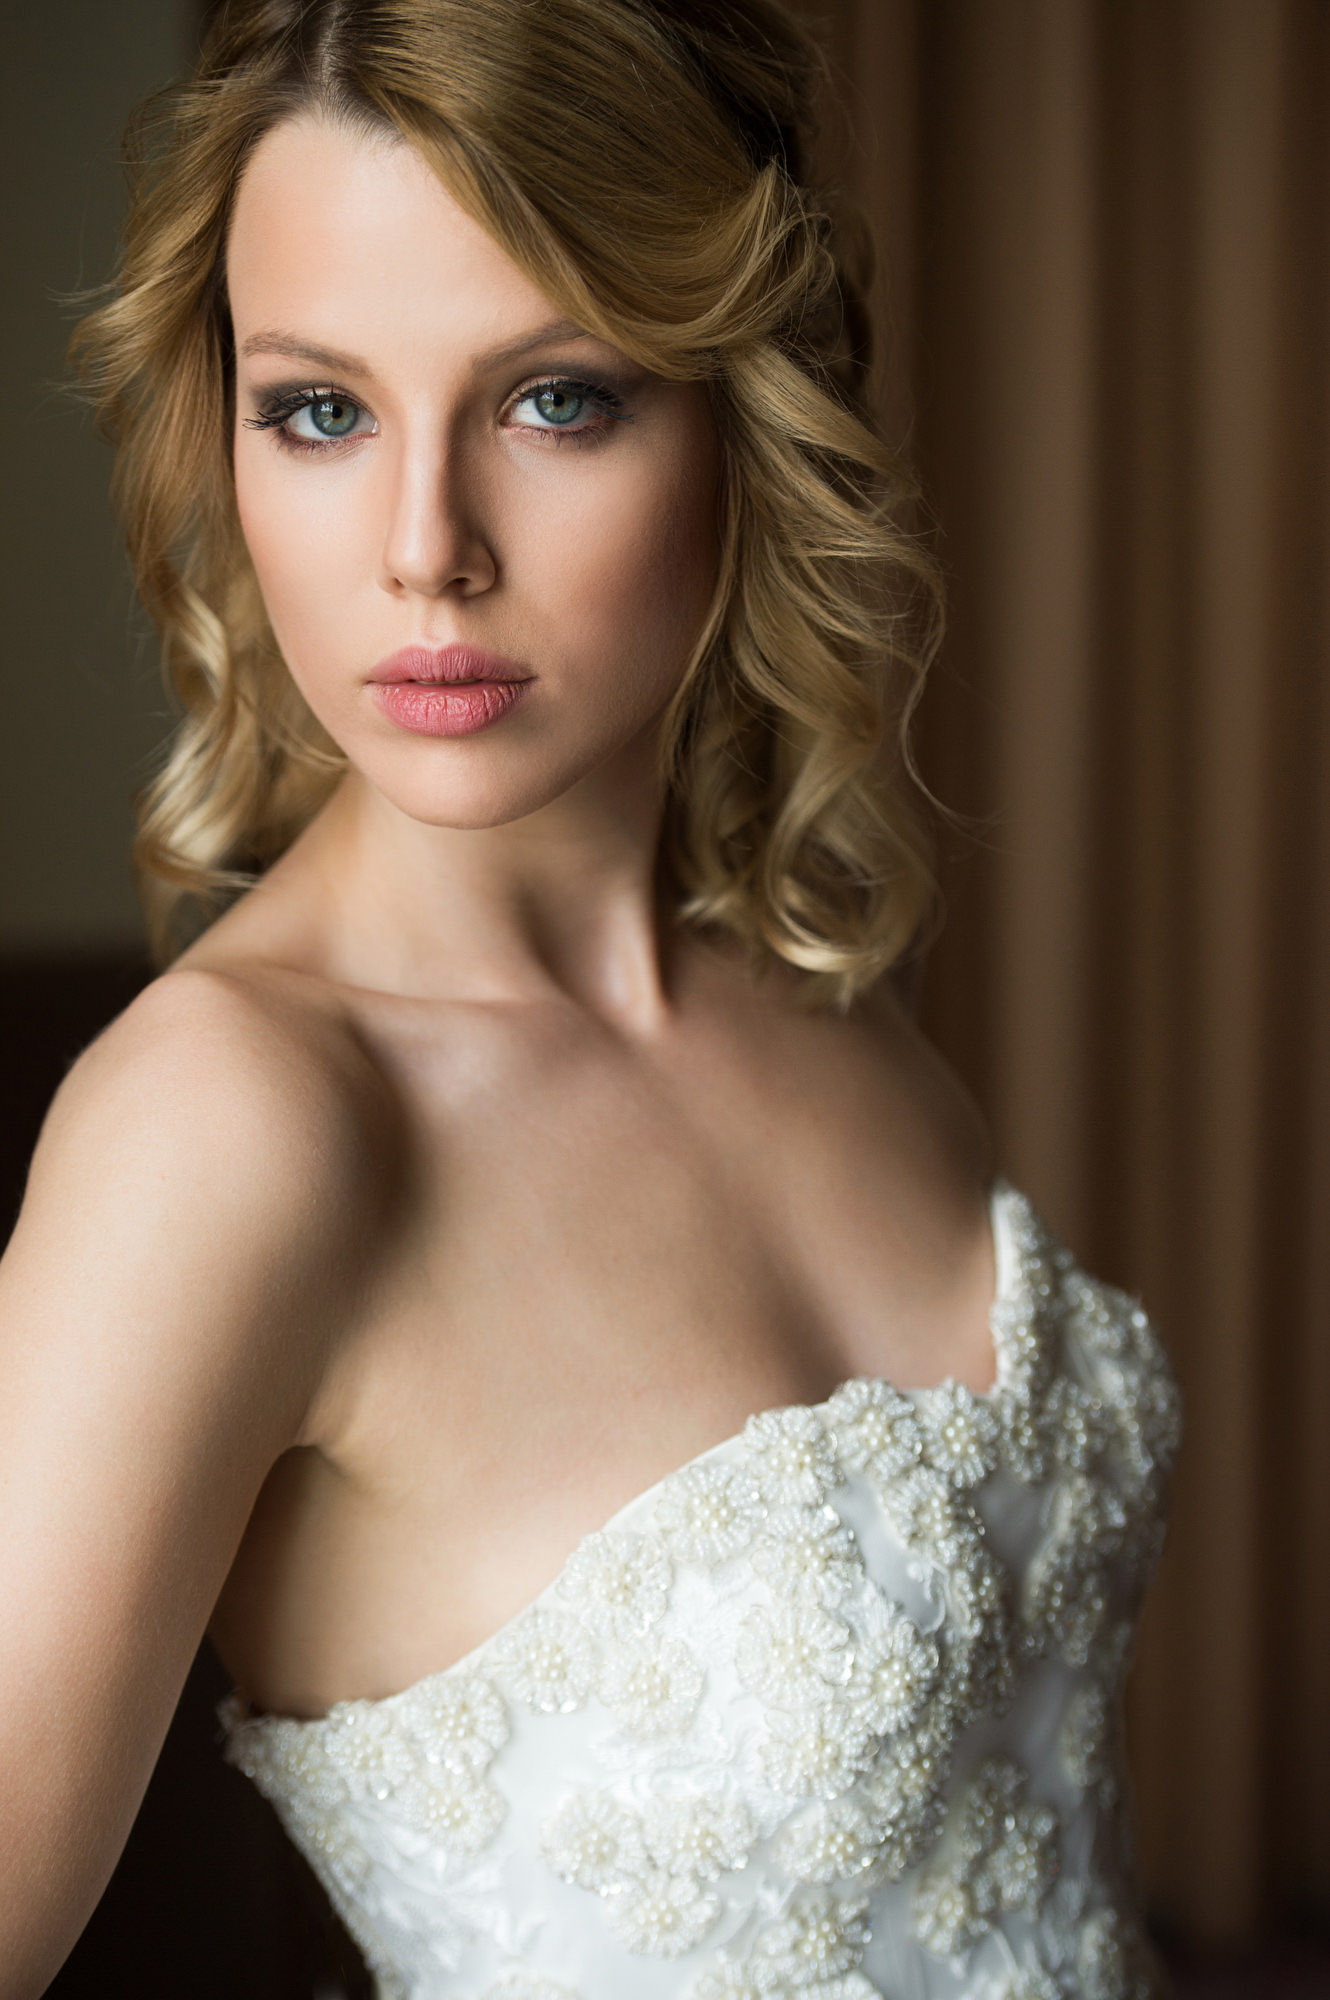 Blonde bride with rose lips and grey and silver eyeshadow - photo by Jerry Ghionis - Las Vegas